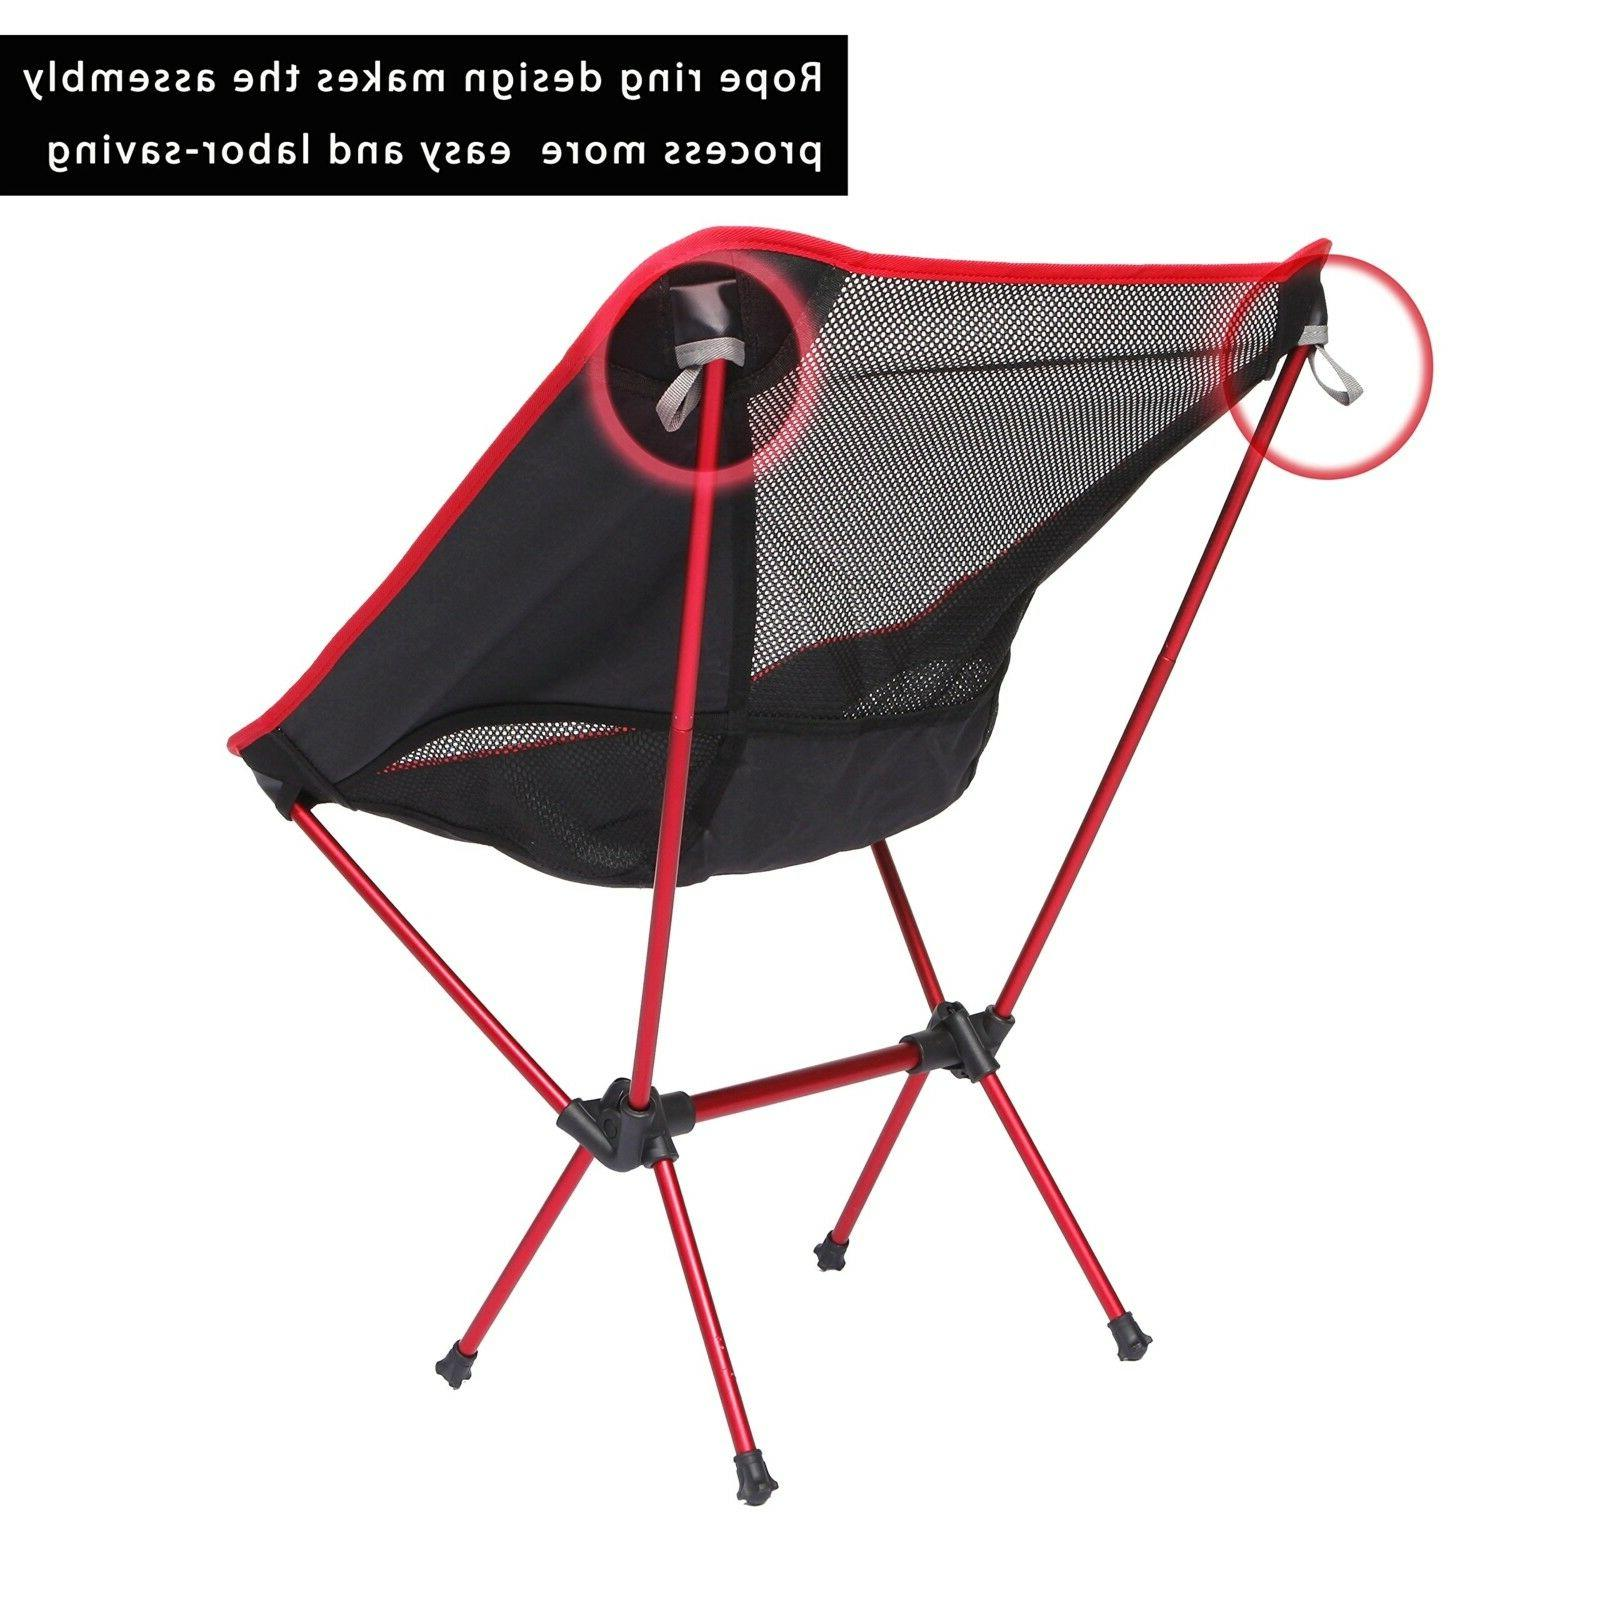 Outdoor Ultralight Chairs with Carry Bag Camping, Beach Chair